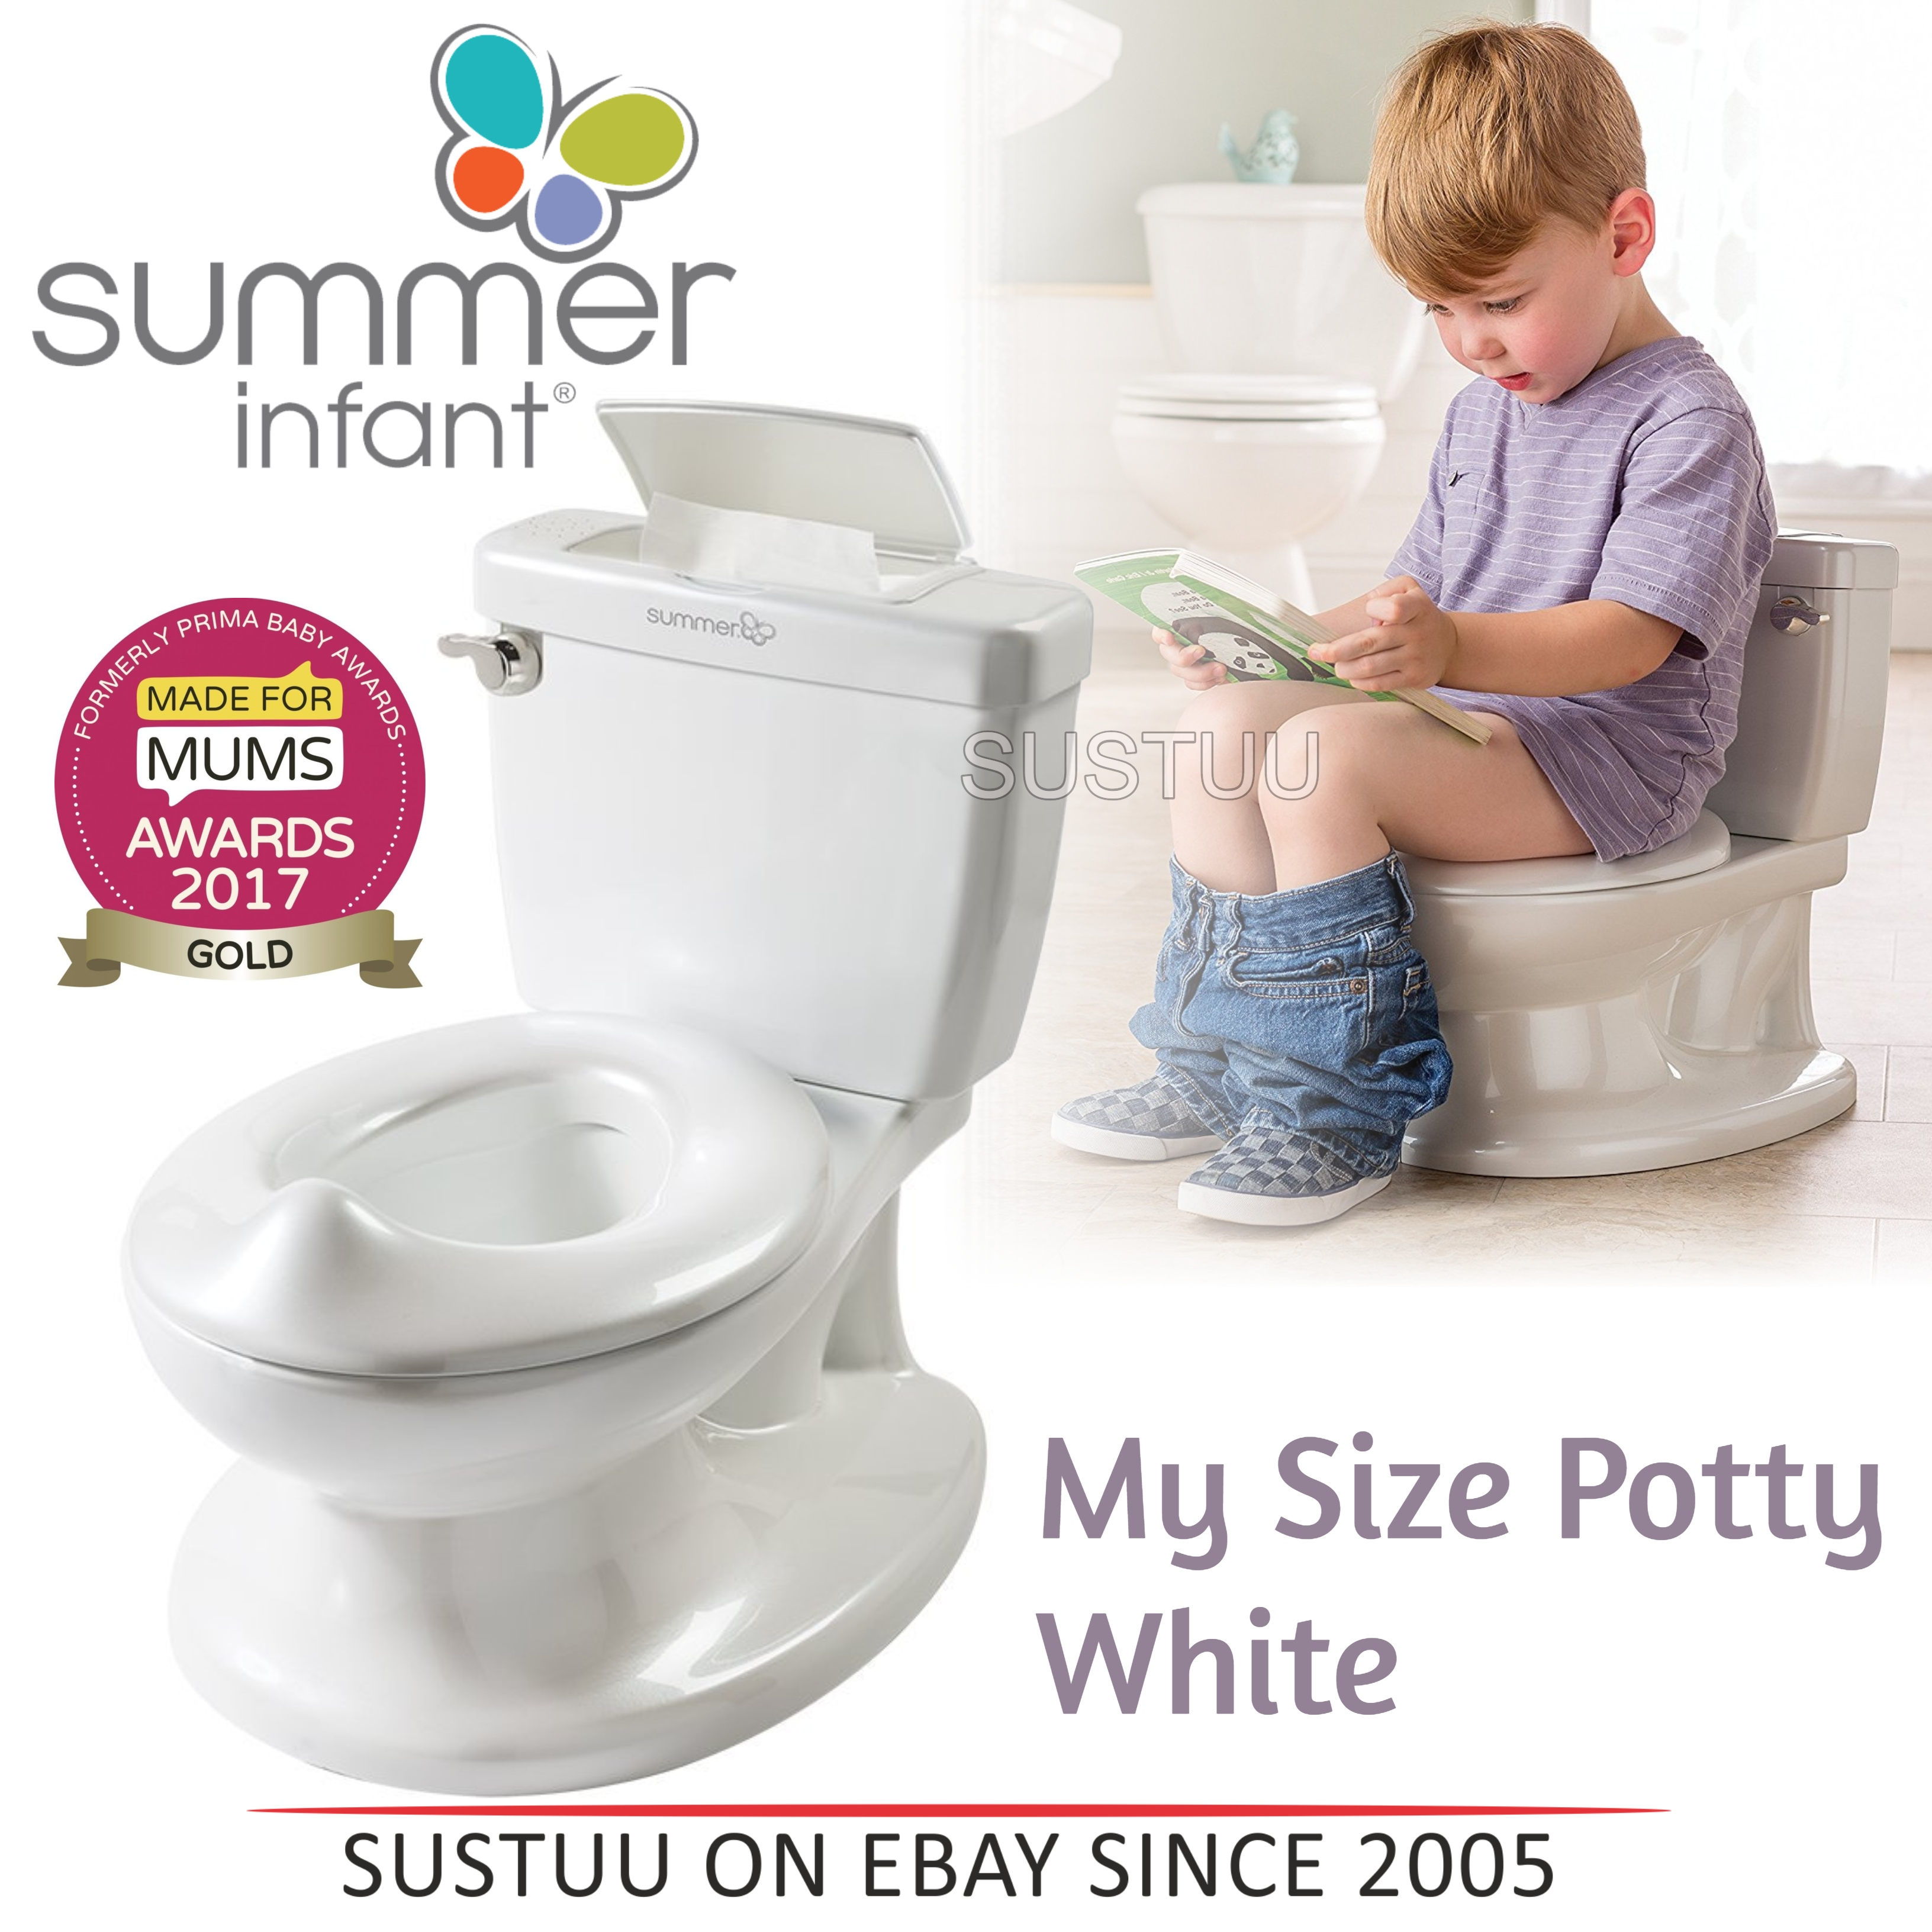 summer potty chair used pedicure chairs no plumbing infant my size baby kid s toilet trainer seat flip up details about white